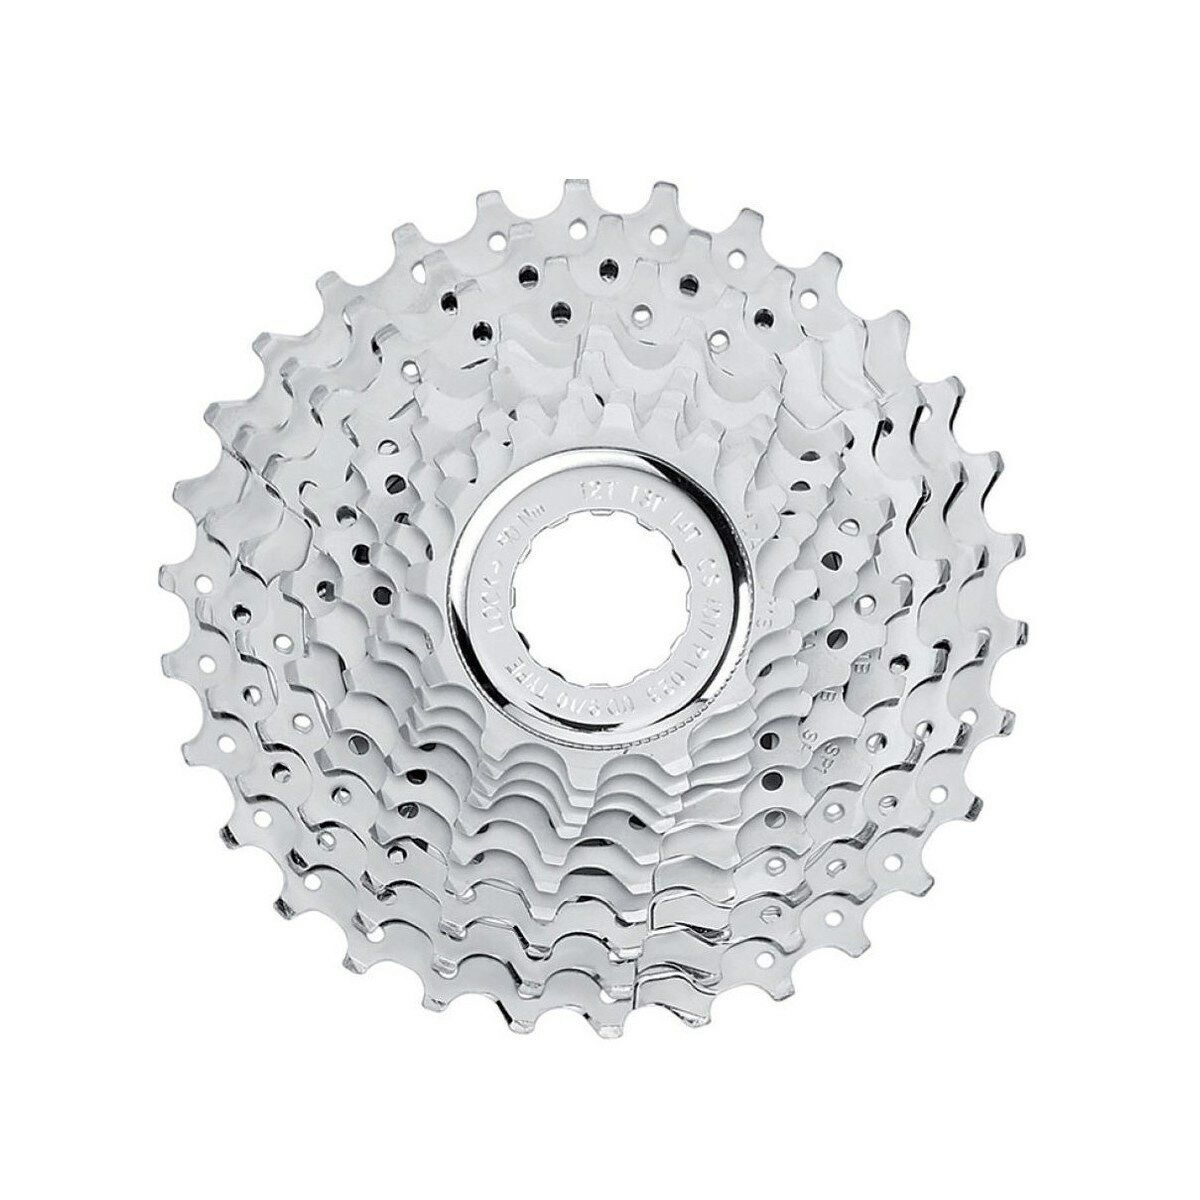 Campagnolo Veloce 10 Speed Road Bike Cassette - 12-23